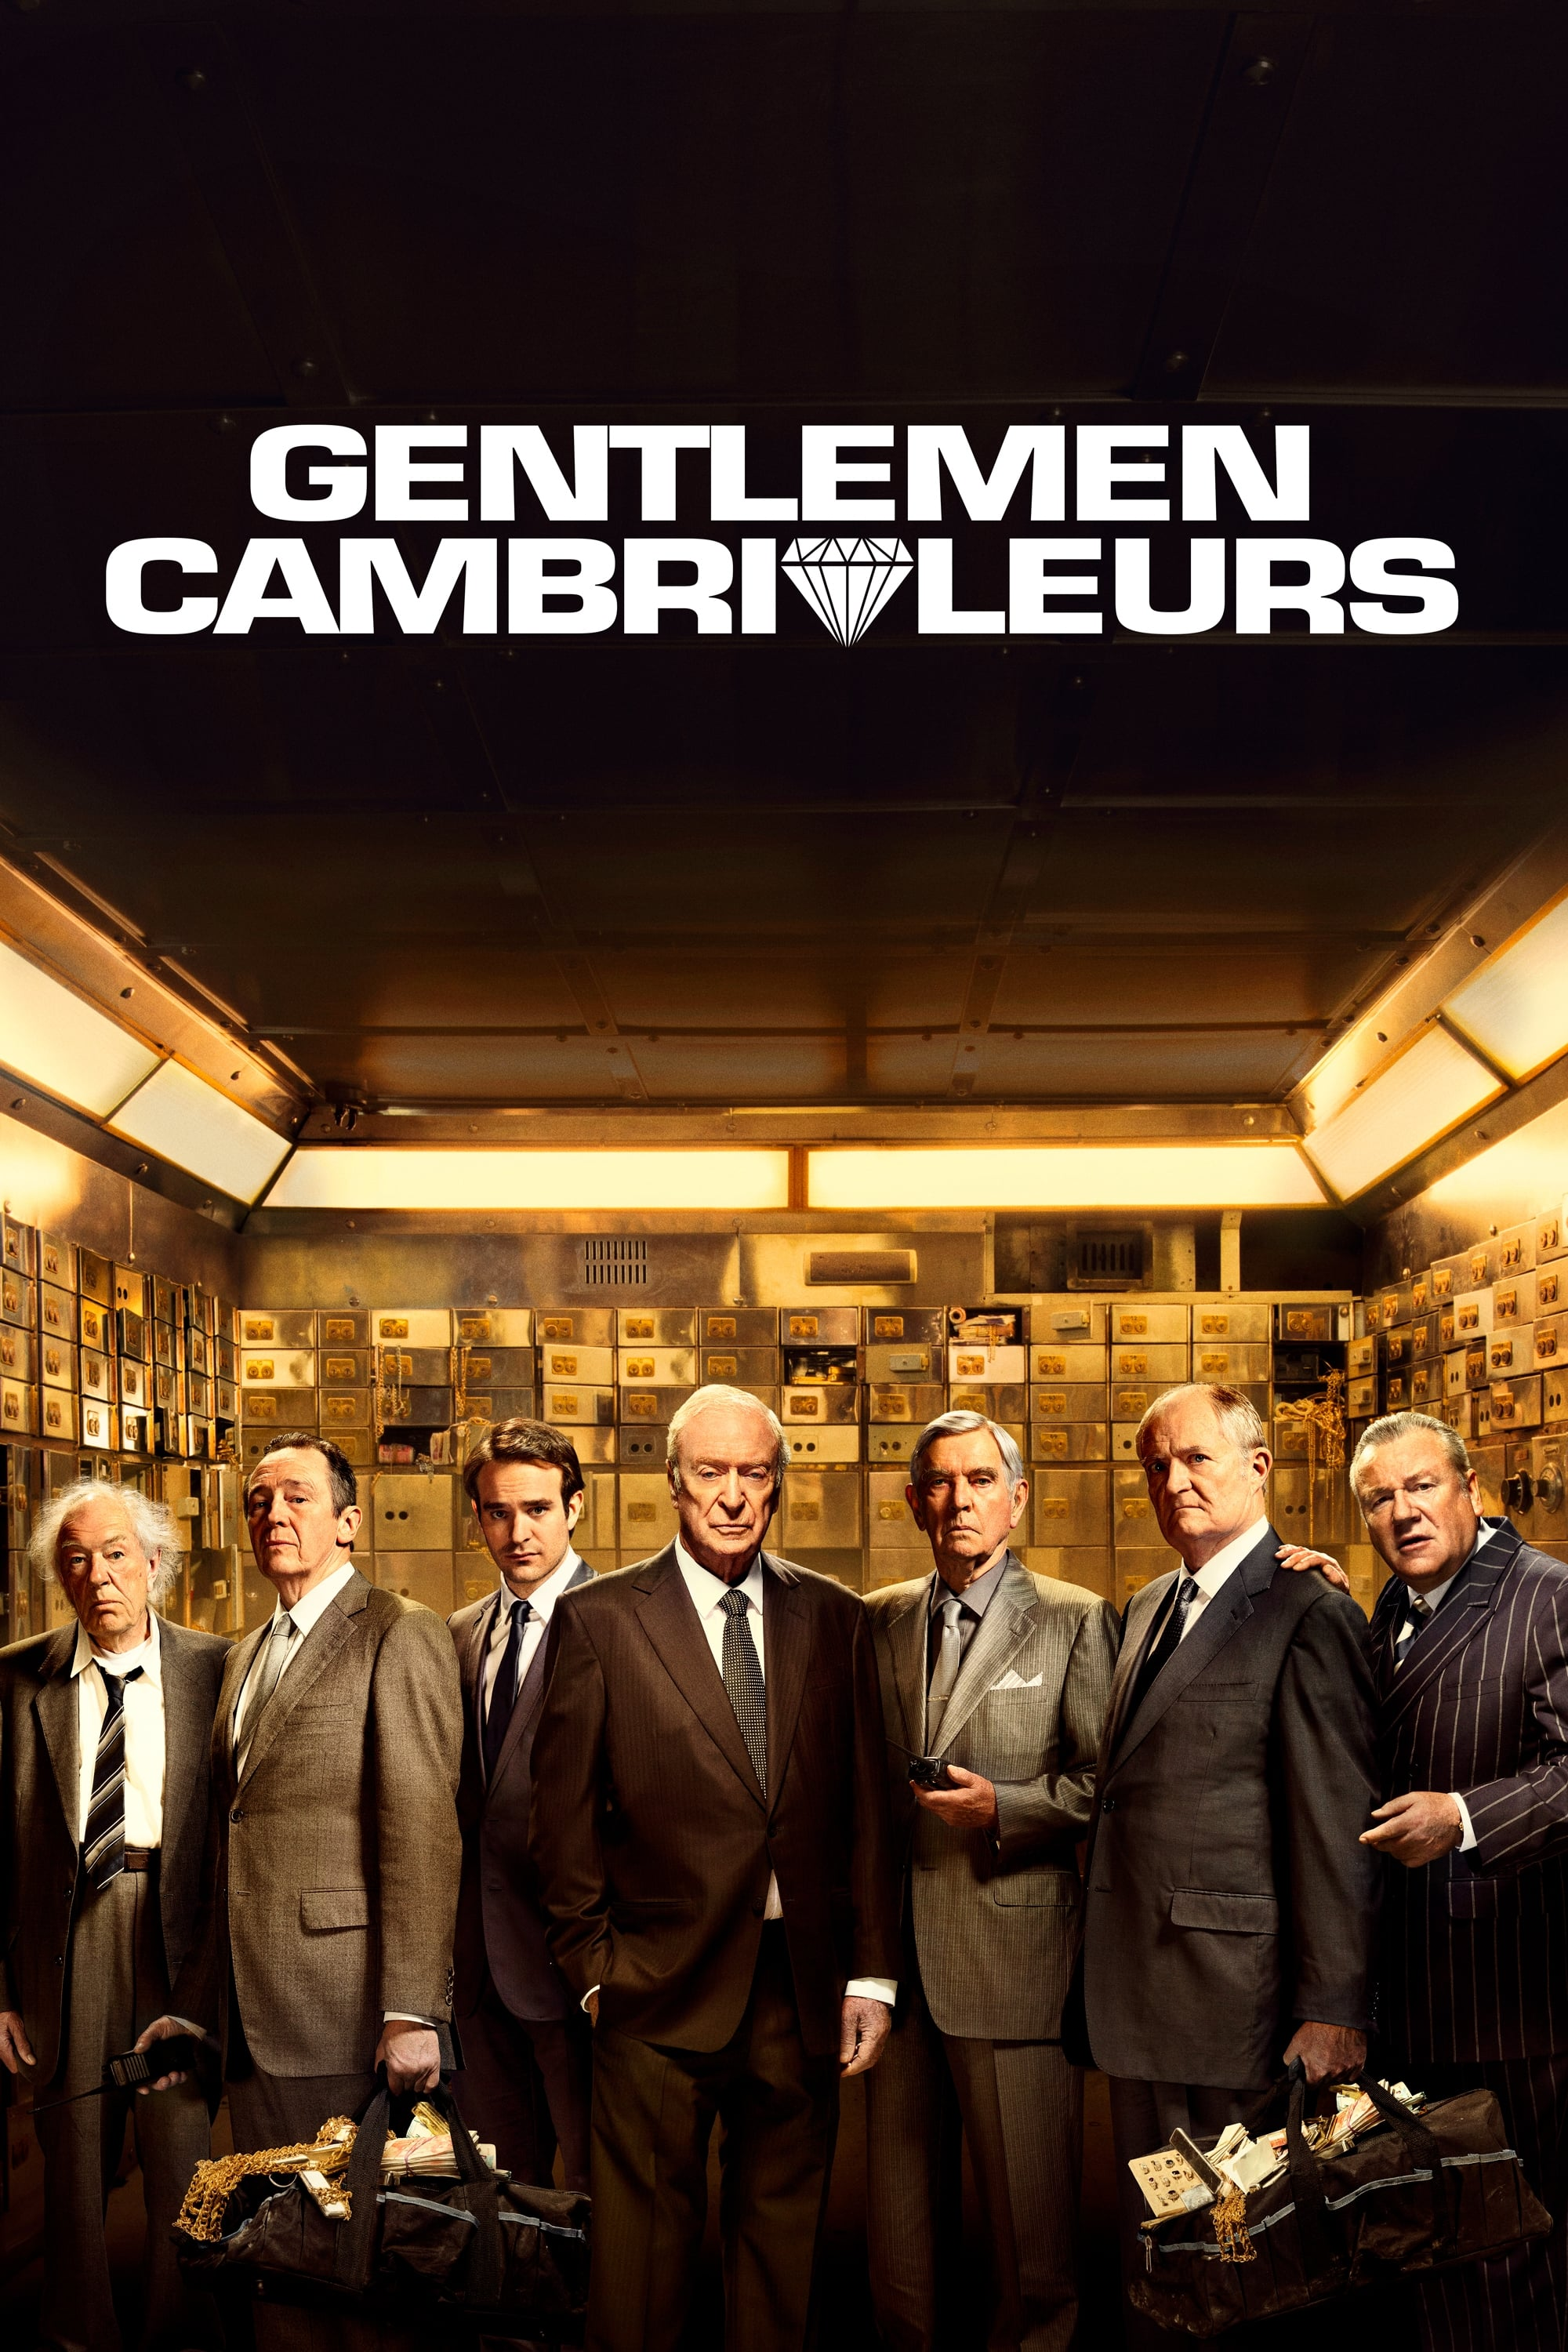 La Chambre Bleue Streaming Vf Gentlemen Cambrioleurs 2018 Film Complet Vf